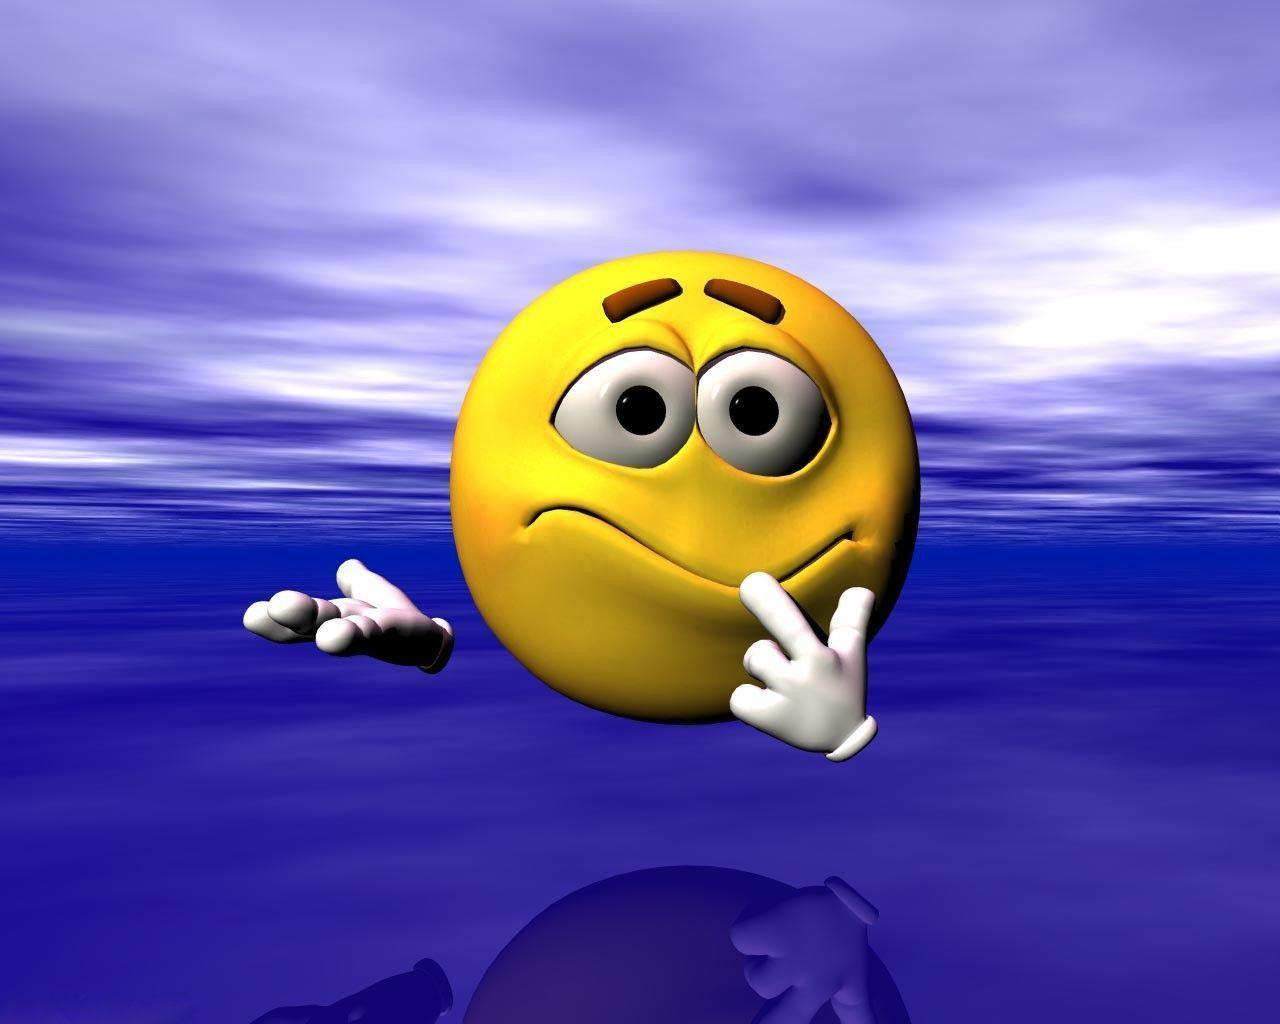 Top 20 Smiley Face Wallpaper: Funny Face Wallpapers